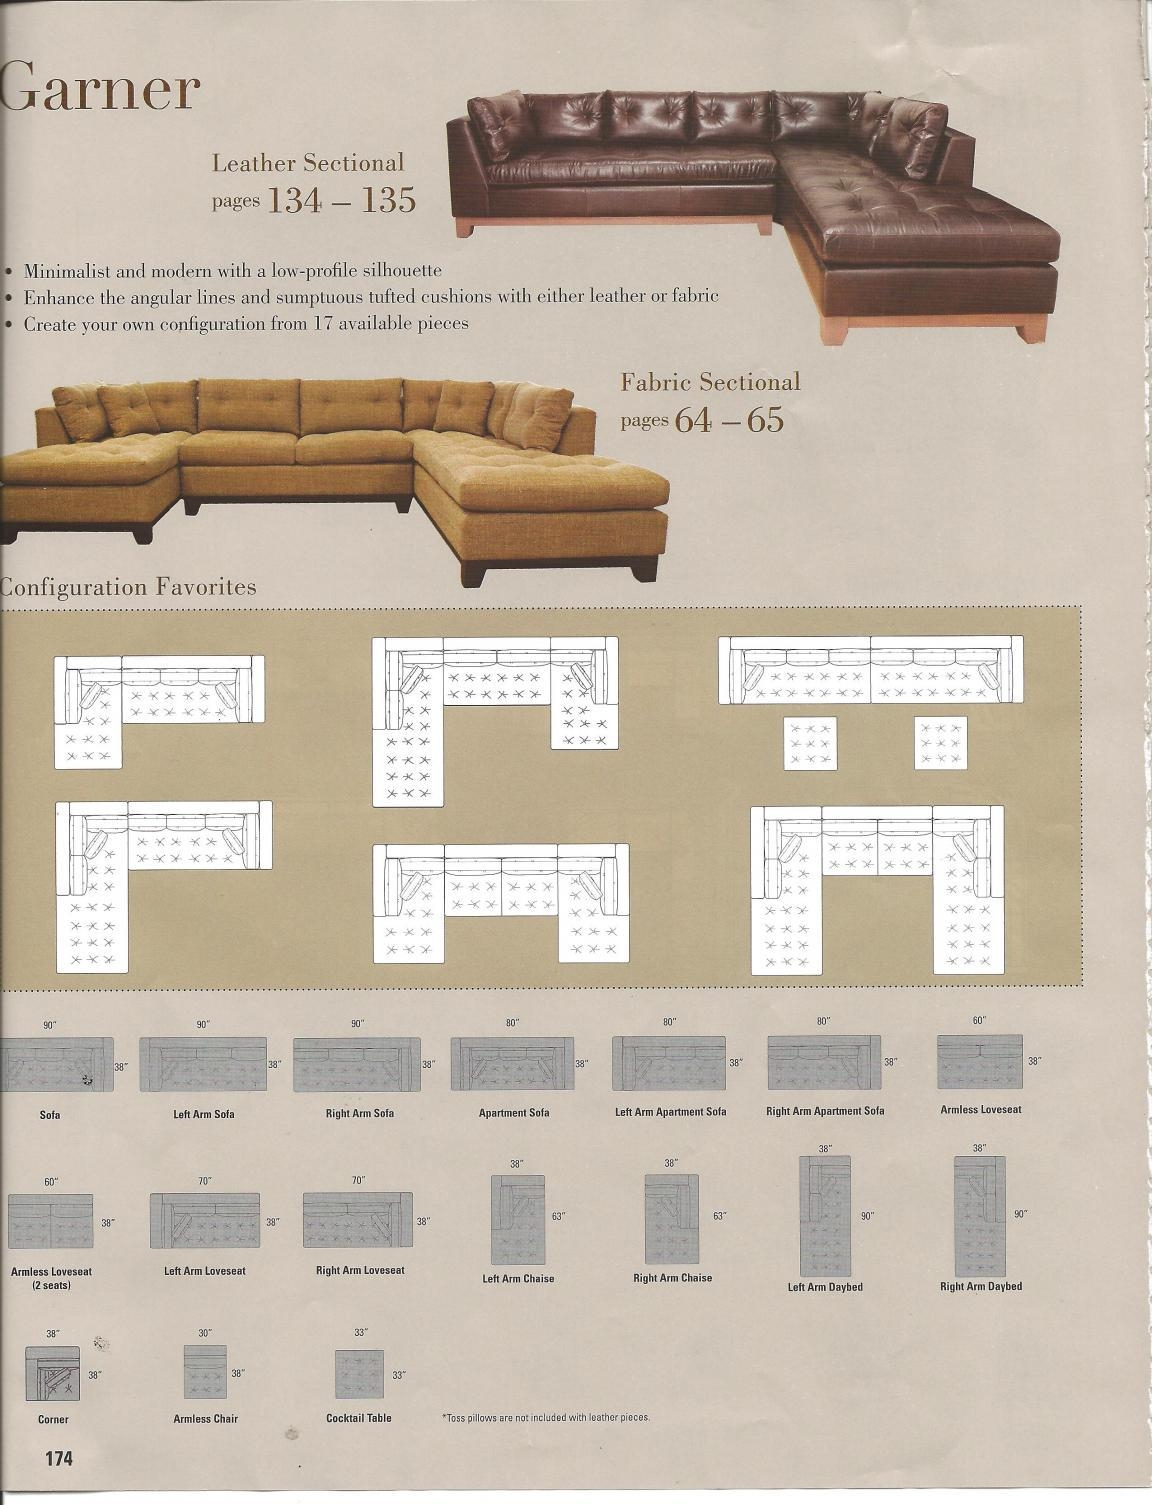 Furniture: Loveseat And Chaise Sectional | Arhaus Sectional With Regard To Arhaus Emory Sectional (View 8 of 15)